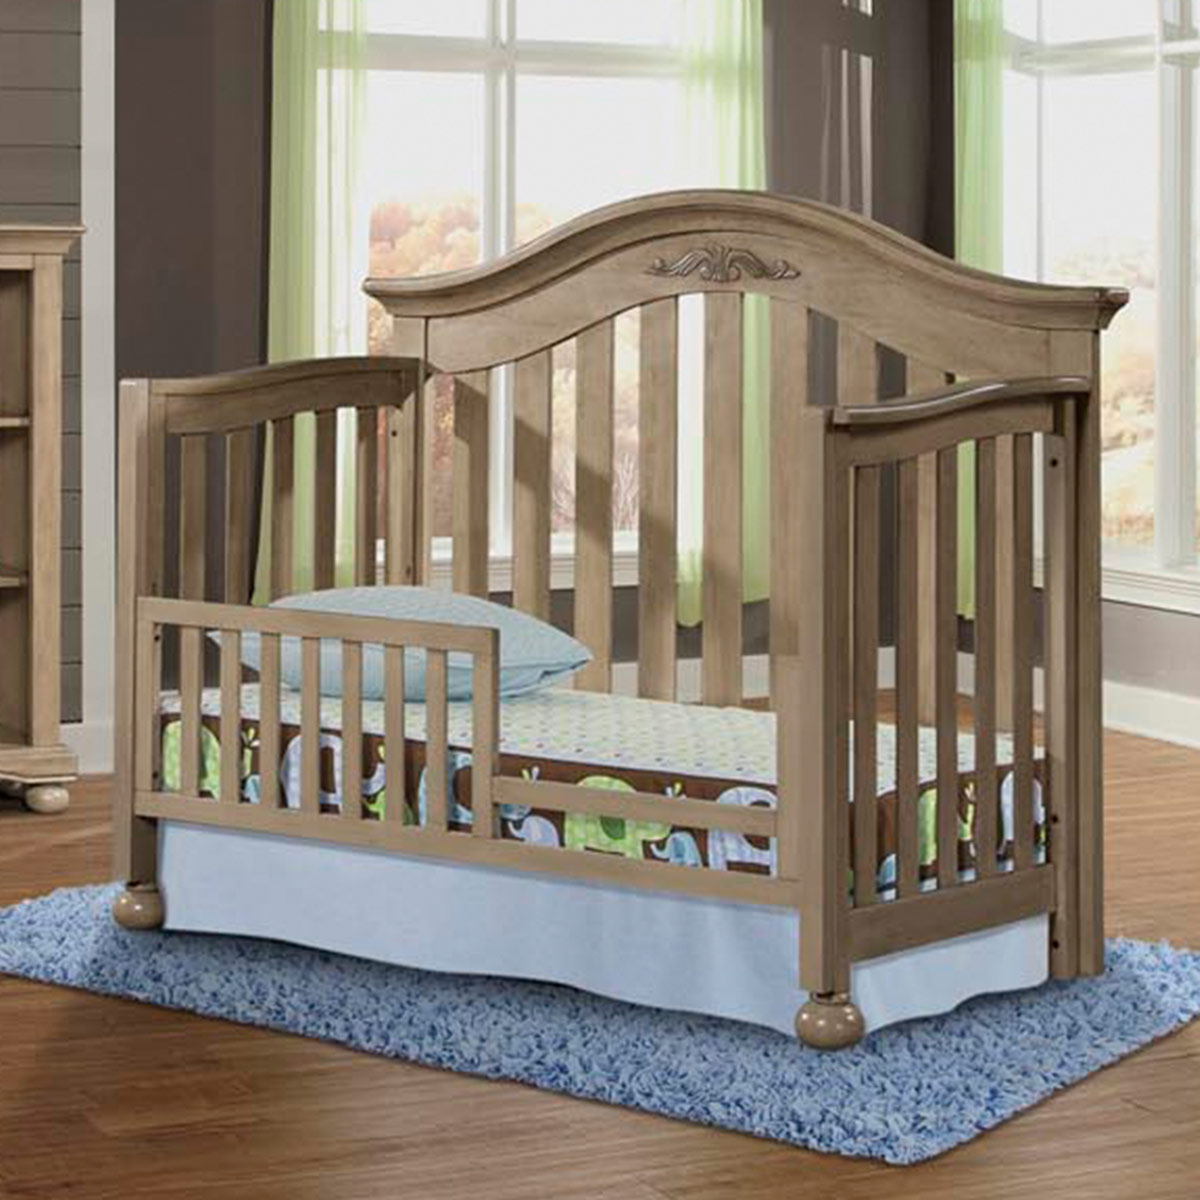 Westwood Design Meadowdale 3 Piece Nursery Set 4 In 1 Convertible Crib Double Dresser And 5 Drawer Chest Vintage Free